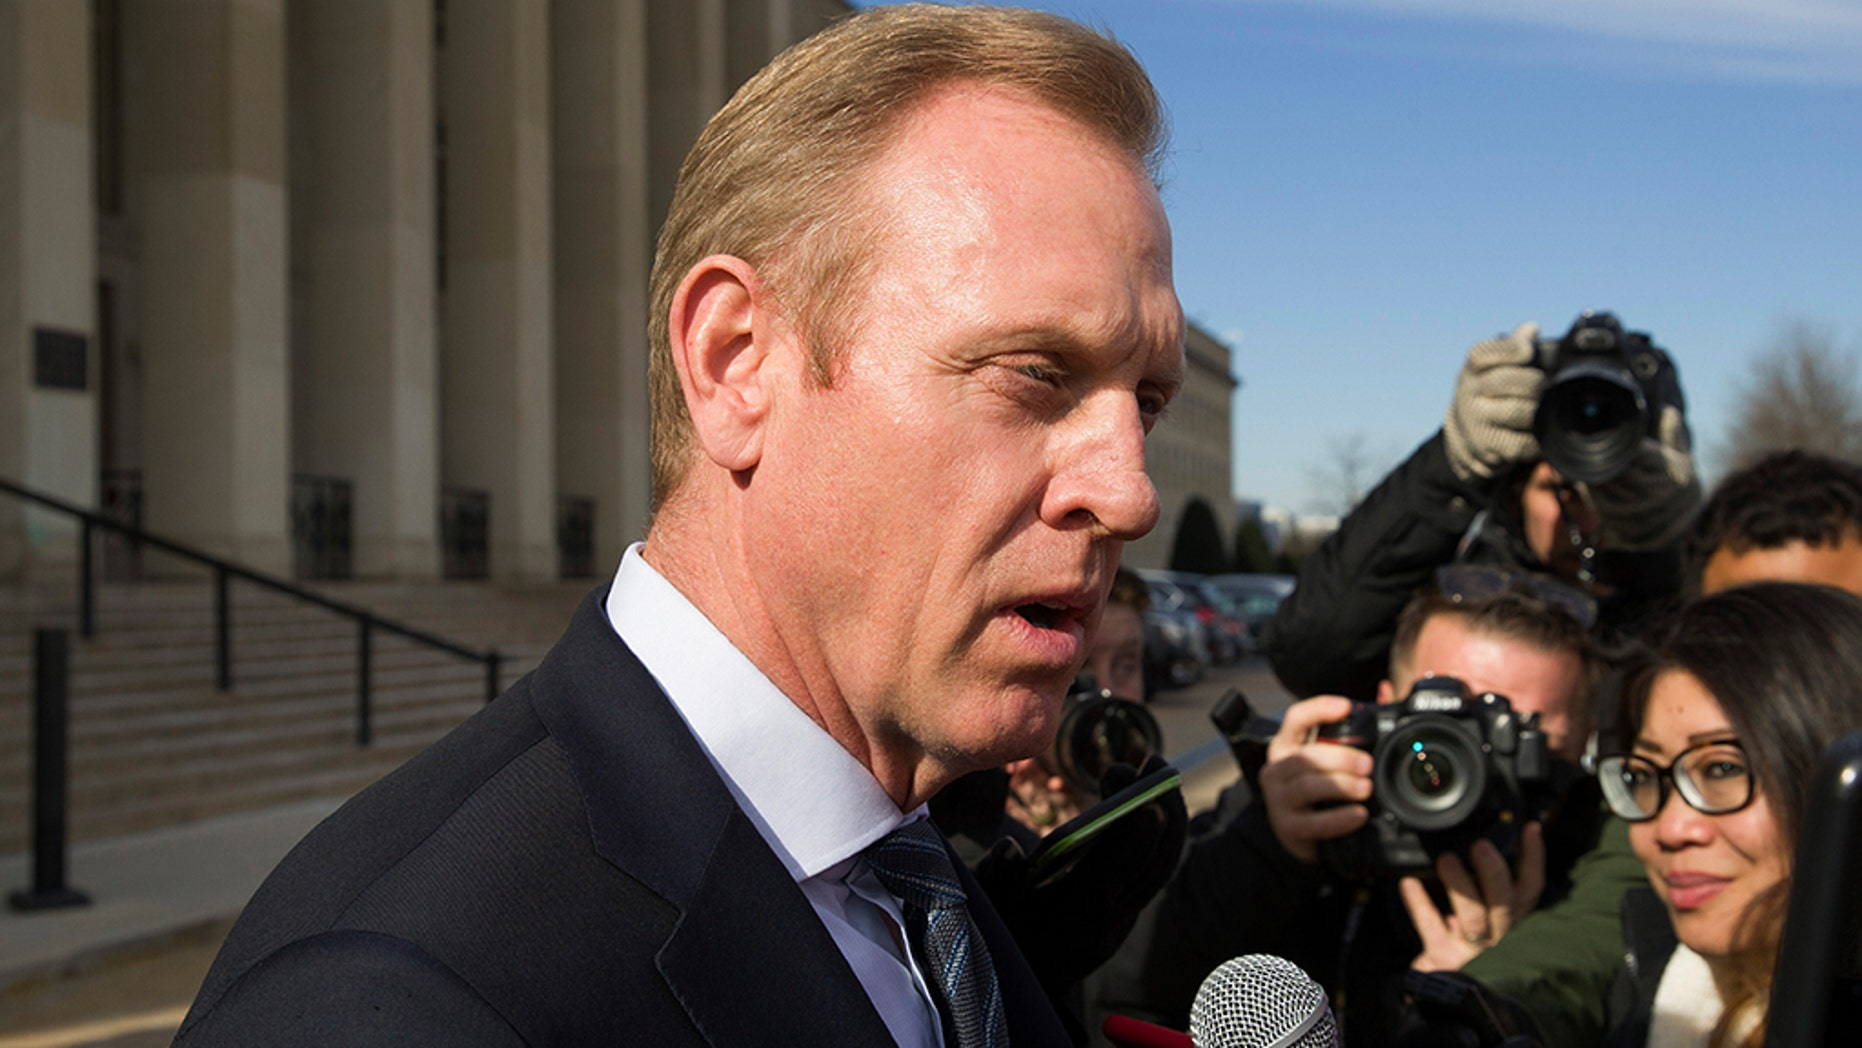 White House Press Secretary Sarah Sanders on Thursday said President Trump intends to nominate Patrick M. Shanahan to become the U.S. secretary of defense, following his time serving as acting secretary.